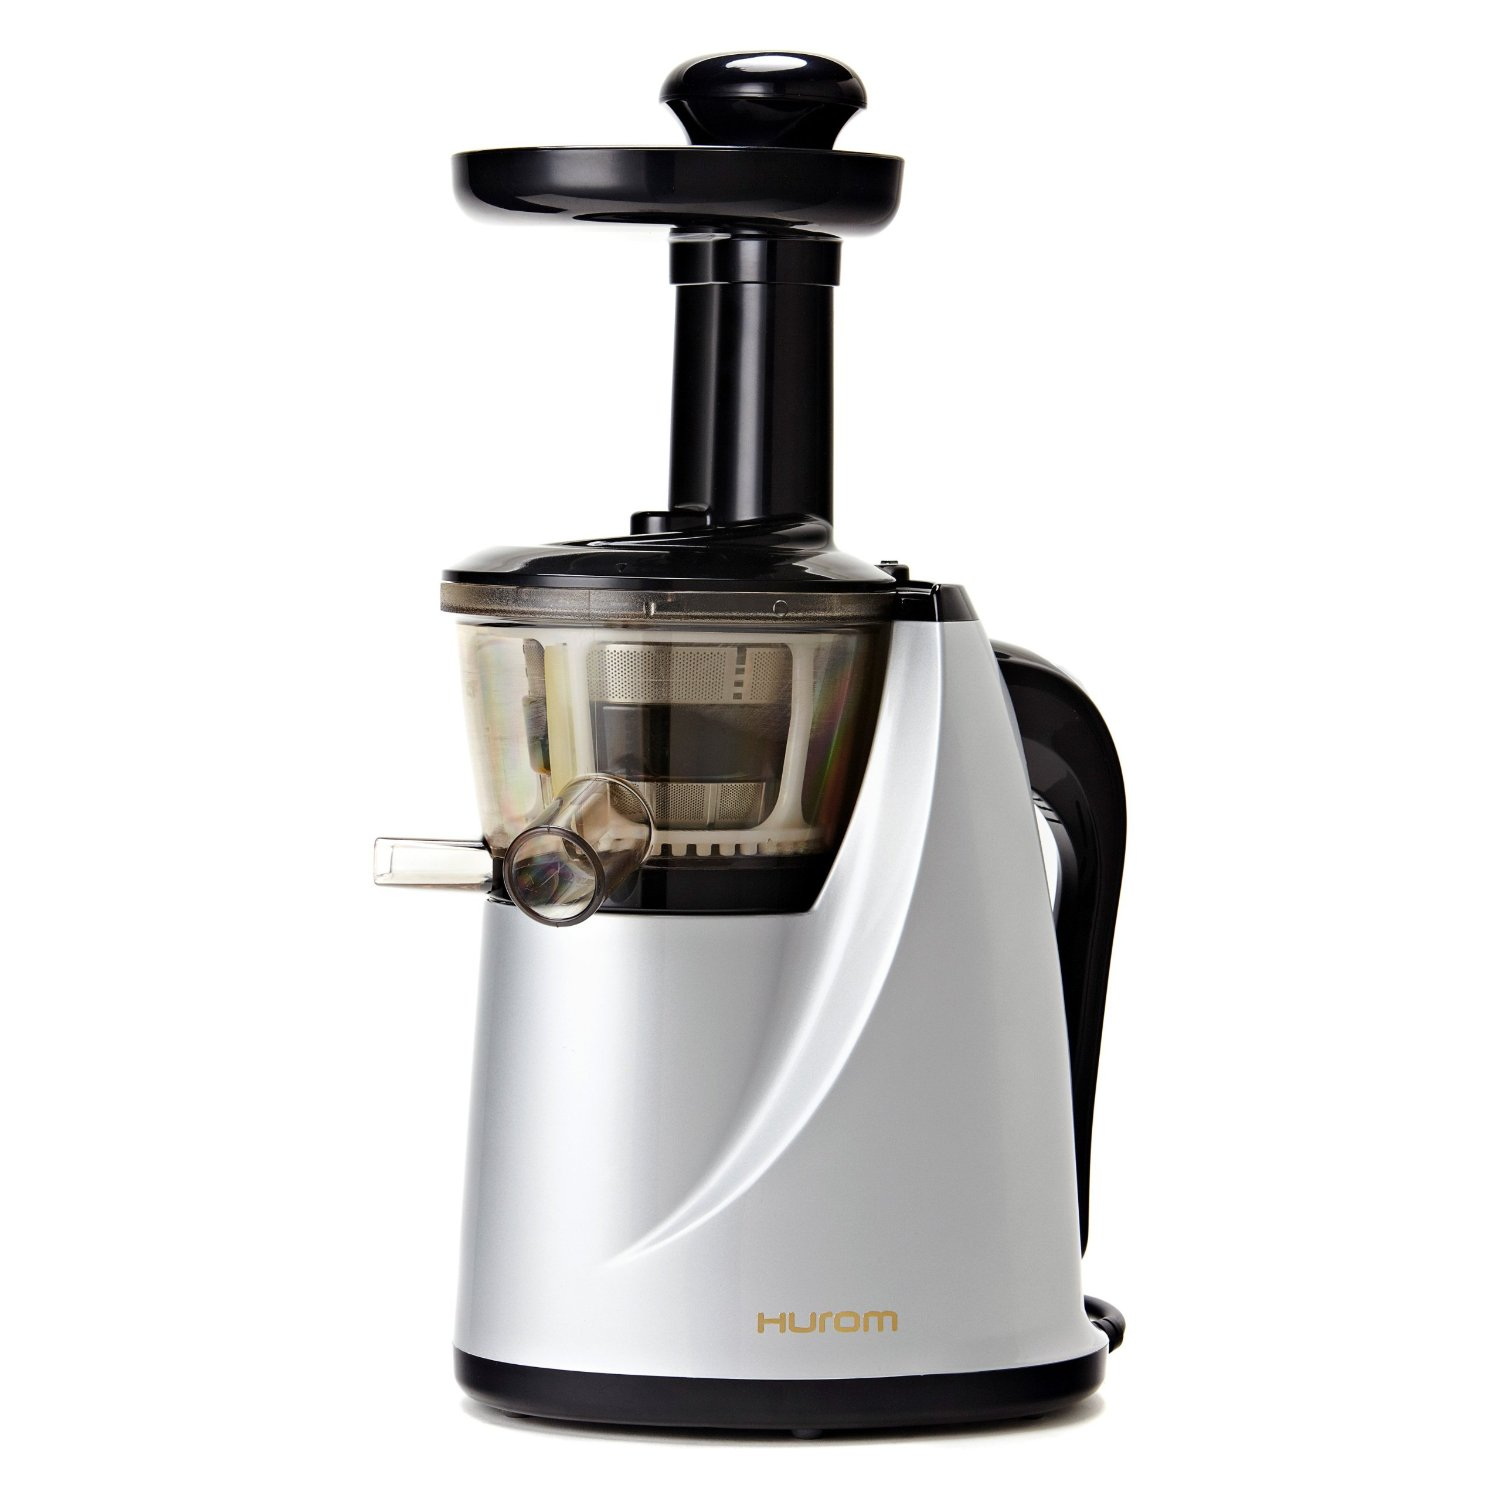 Hurom Slow Juicer English : Hurom HU-100 Masticating Slow Juicer Review - Best Cold Press Juicers